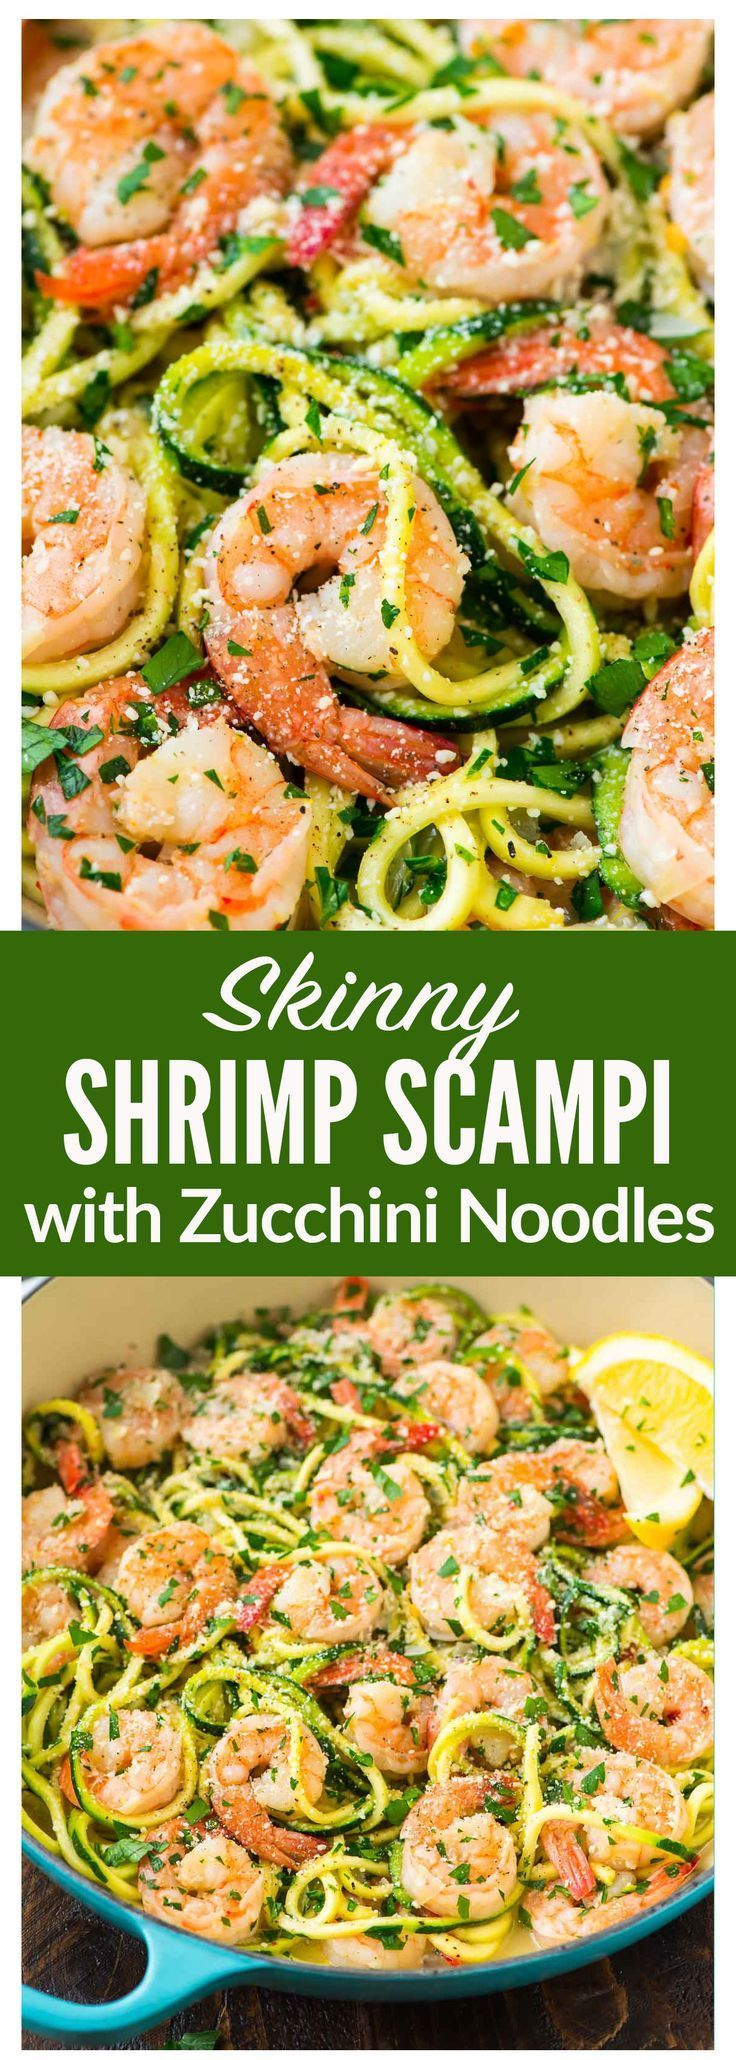 Skinny Shrimp Scampi with Zucchini Noodles. Easy, low carb version of the classic pasta dish that can be made without wine. Recipe at wellplated.com | @wellplated (Low Carb Squash Recipes)